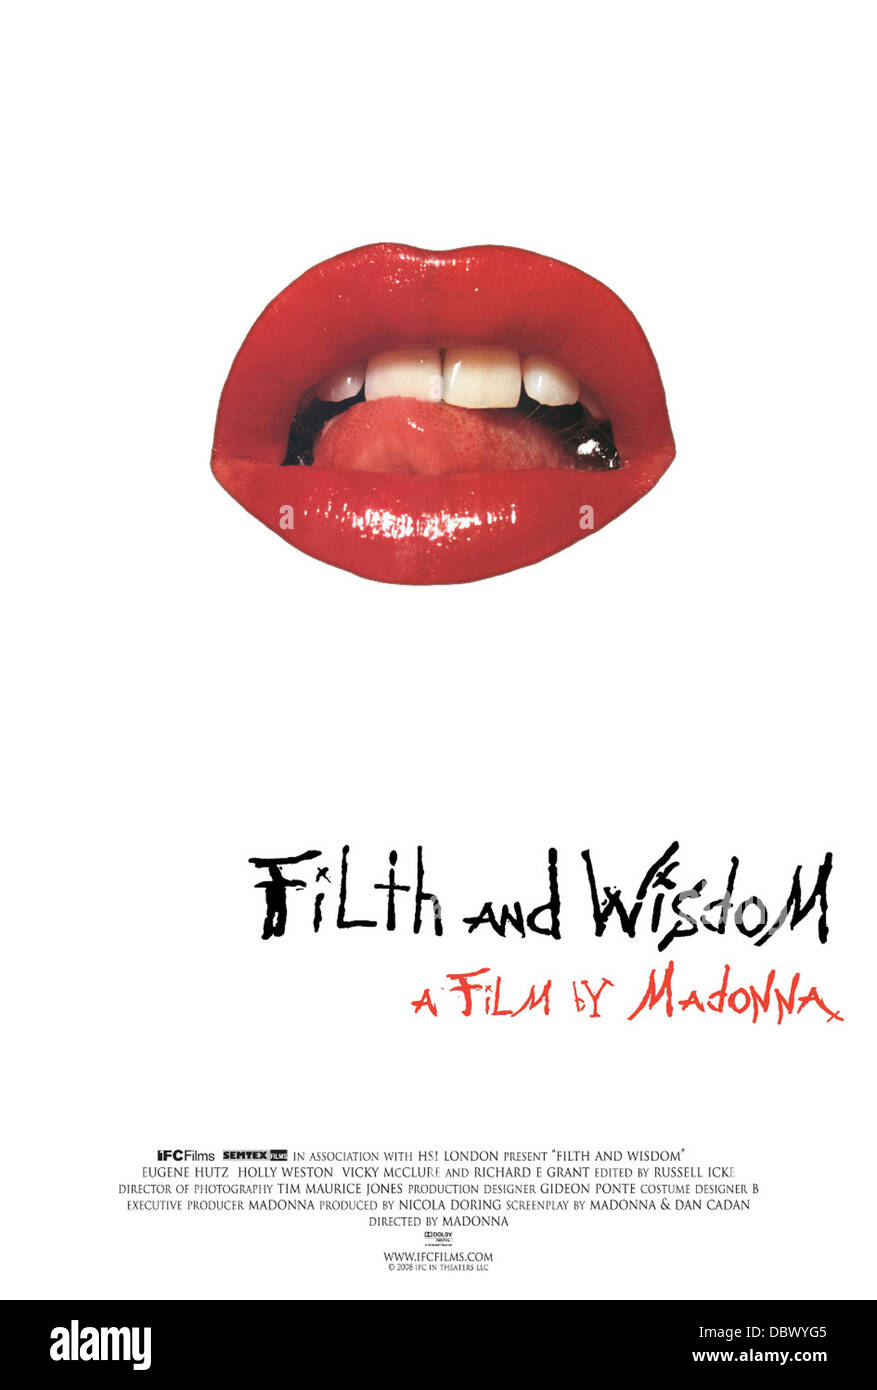 FILTH AND WISDOM (2008) MADONNA (DIR) 004 MOVIESTORE COLLECTION LTD - Stock Image